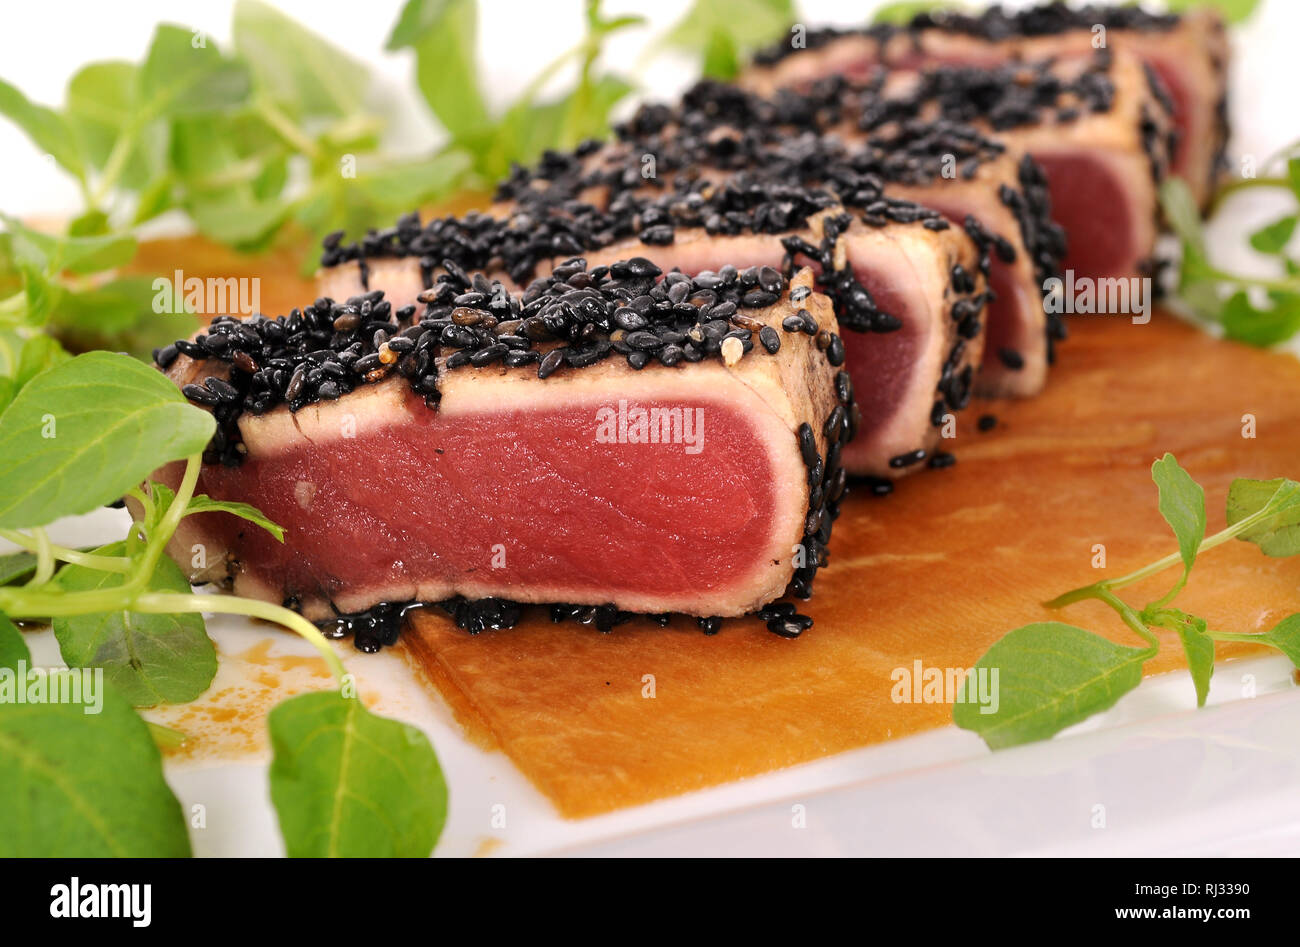 Seared Ahi Stock Photos & Seared Ahi Stock Images - Page 2